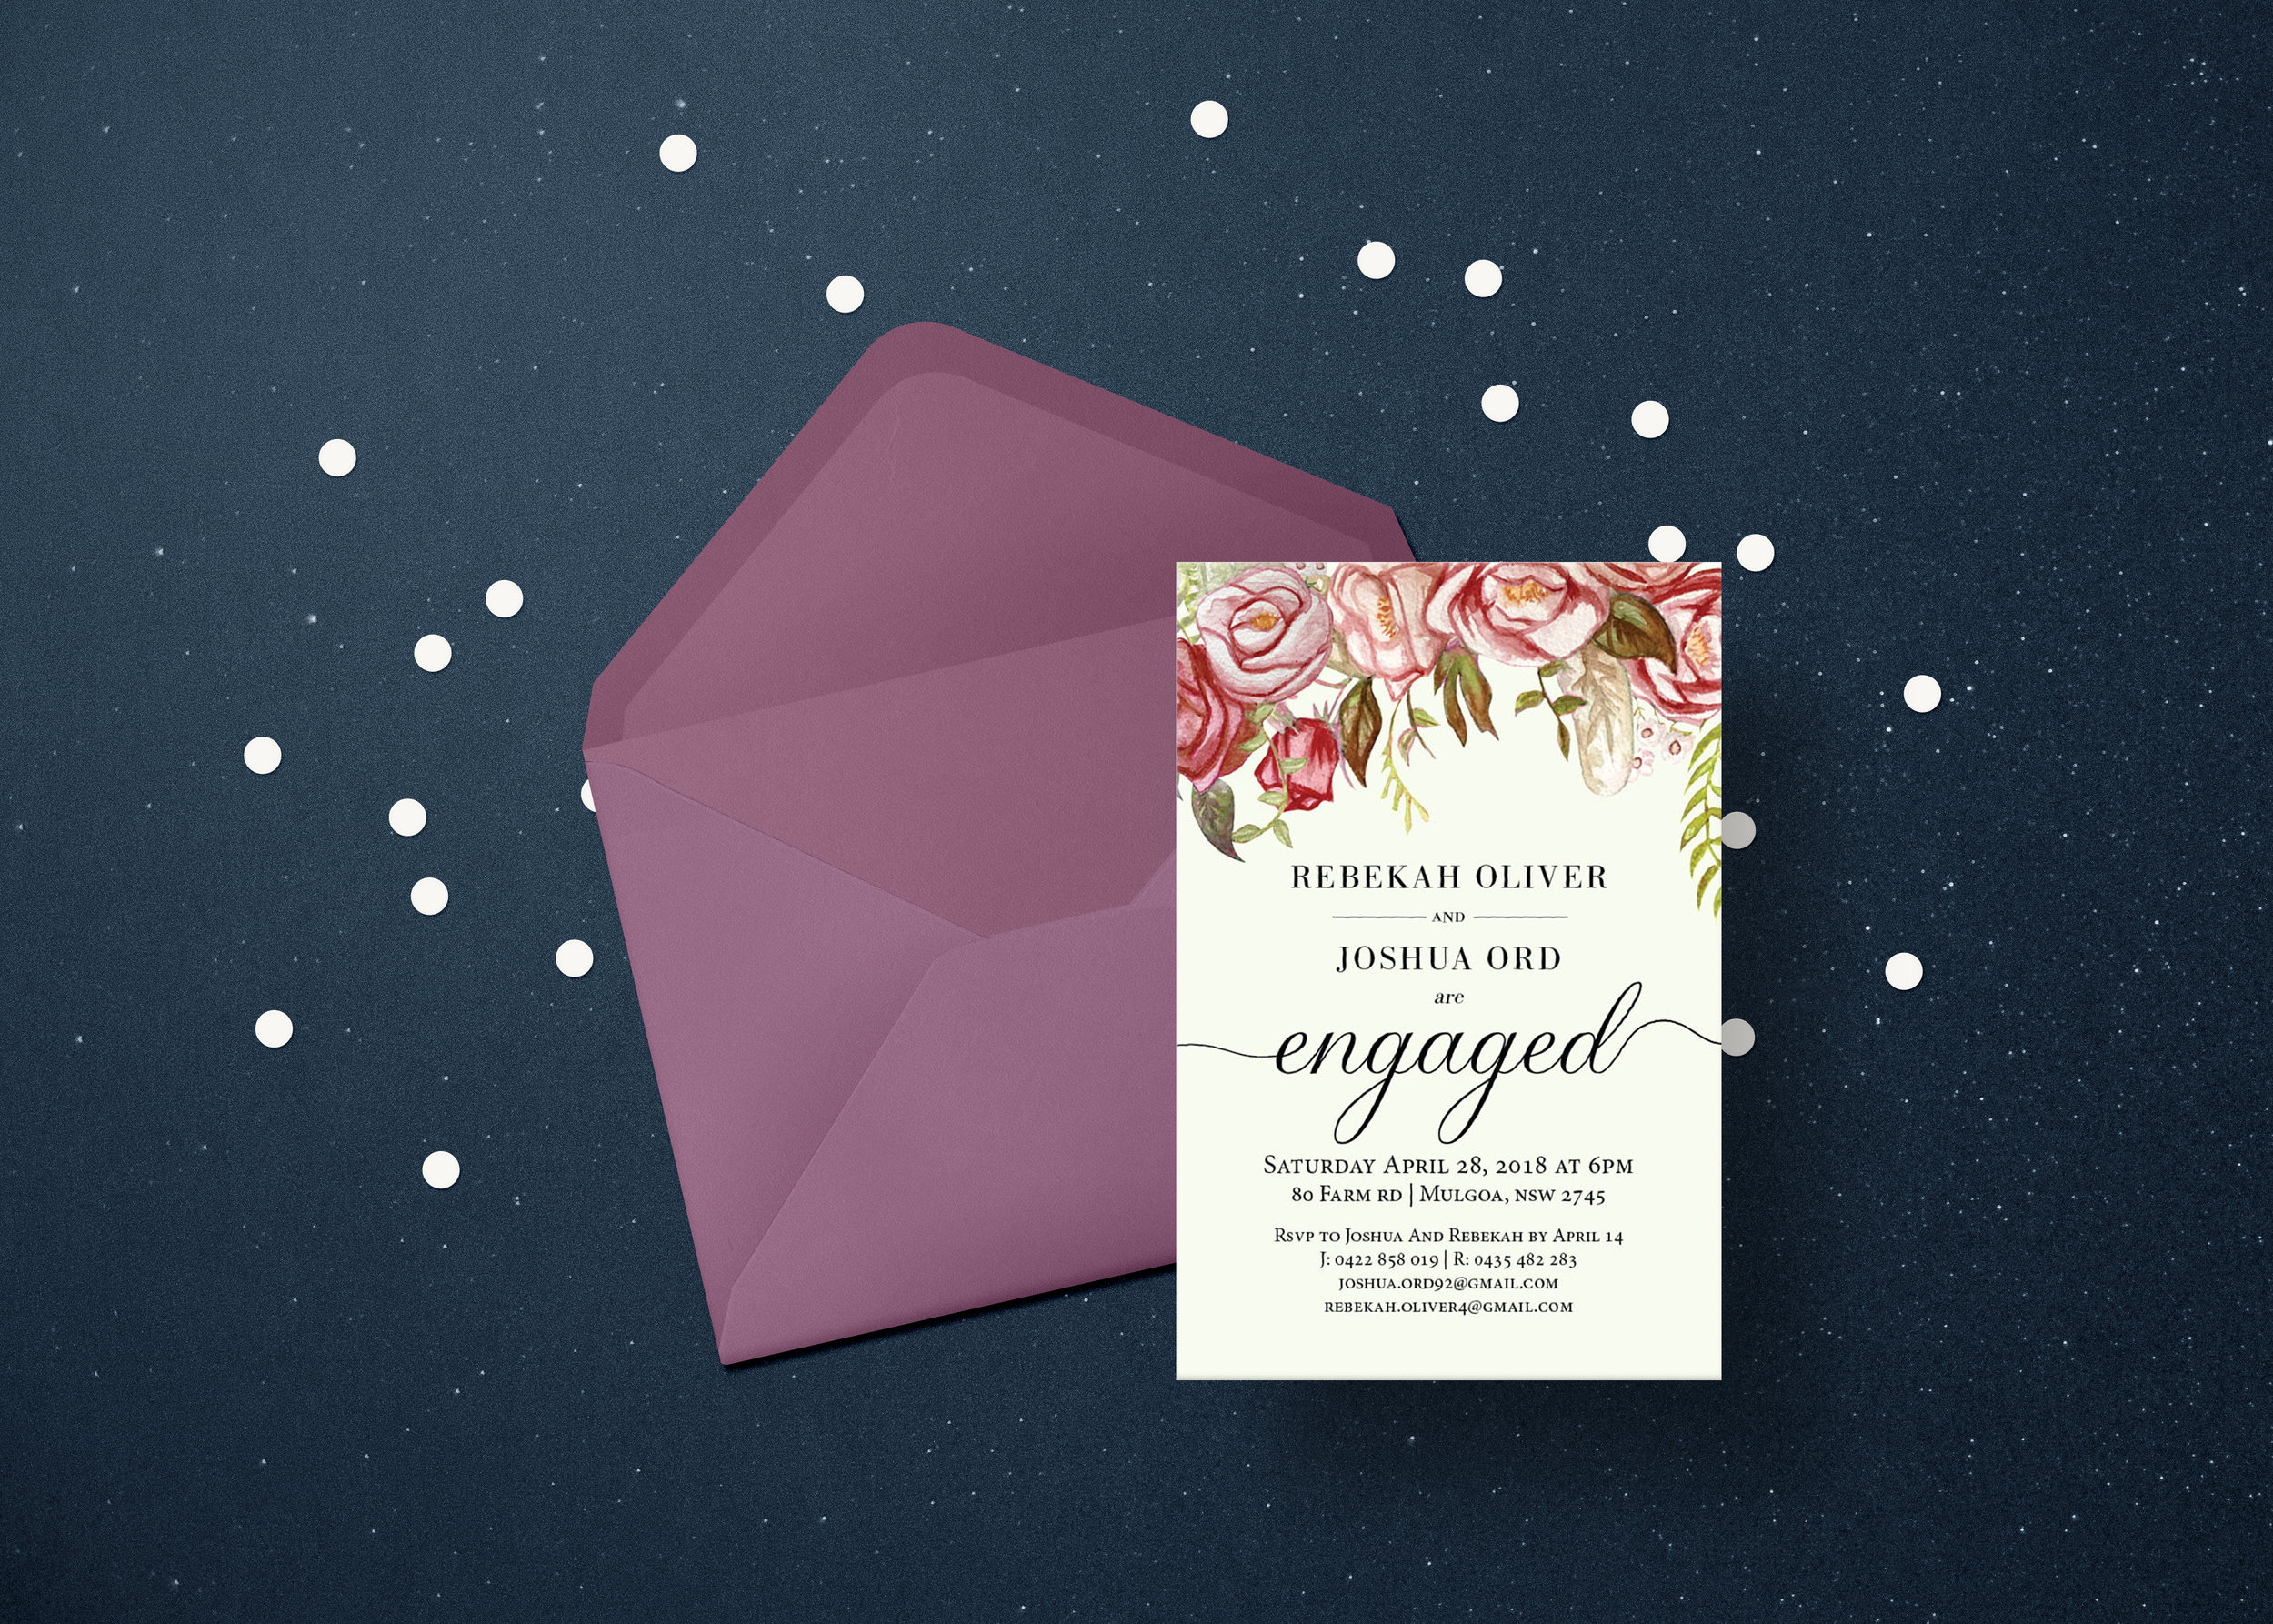 Engagement invitions design with custom illustrations